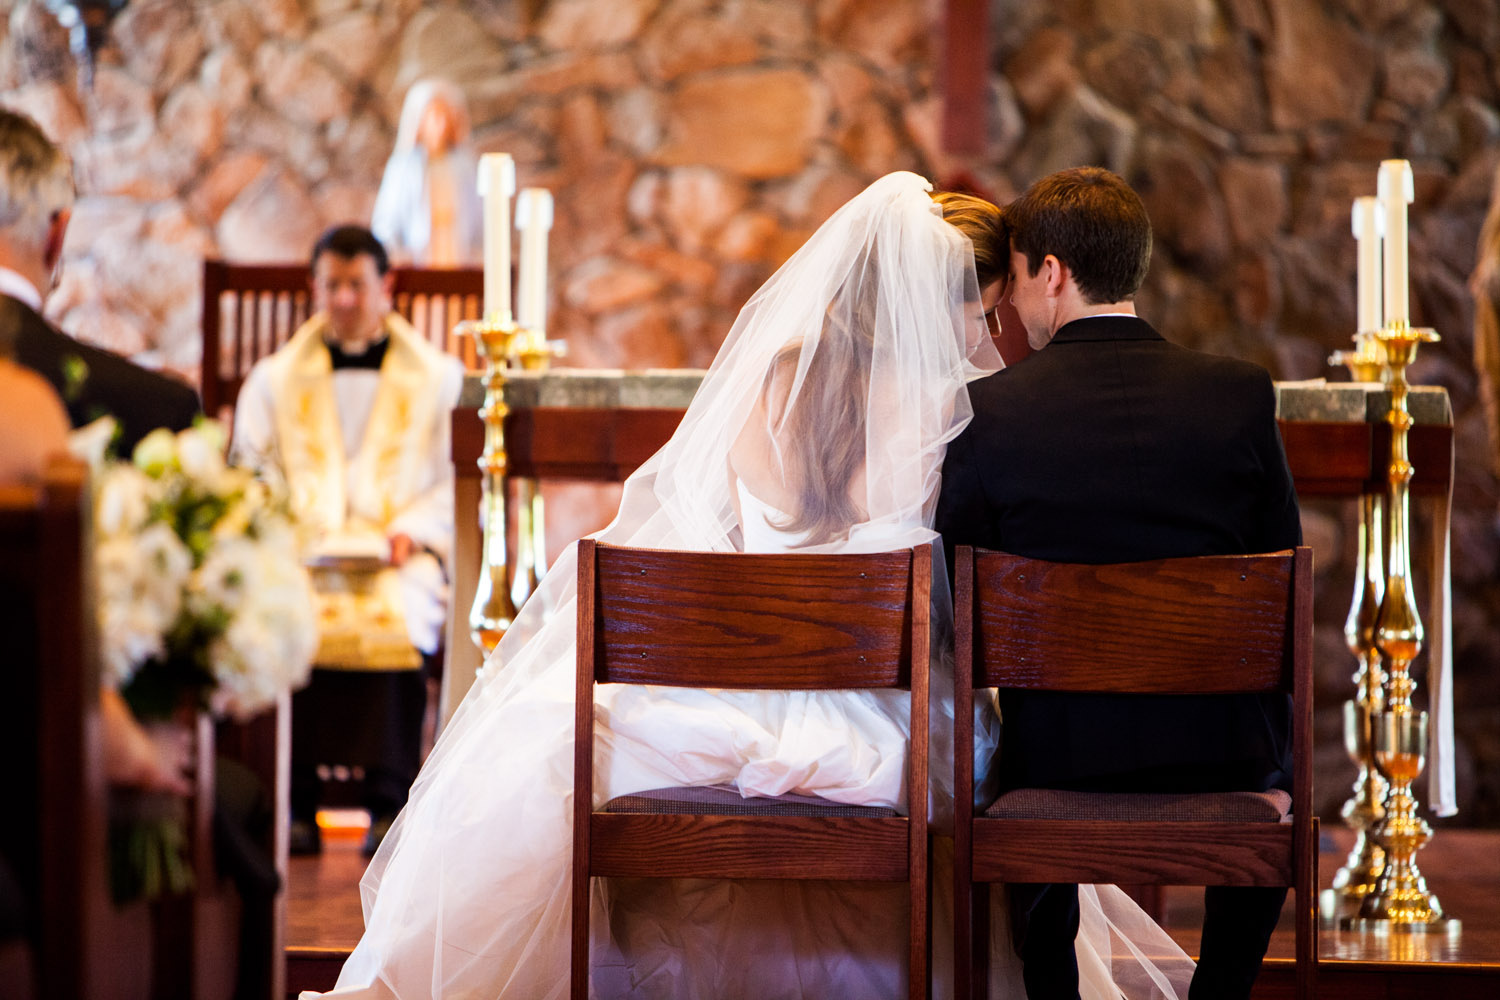 catholic singles in bear lake Now enrolling for 2018-2019 call 651-429-7771 for tour visit us: frassati catholic academy, 4690 bald eagle avenue, white bear lake, mn 55110.